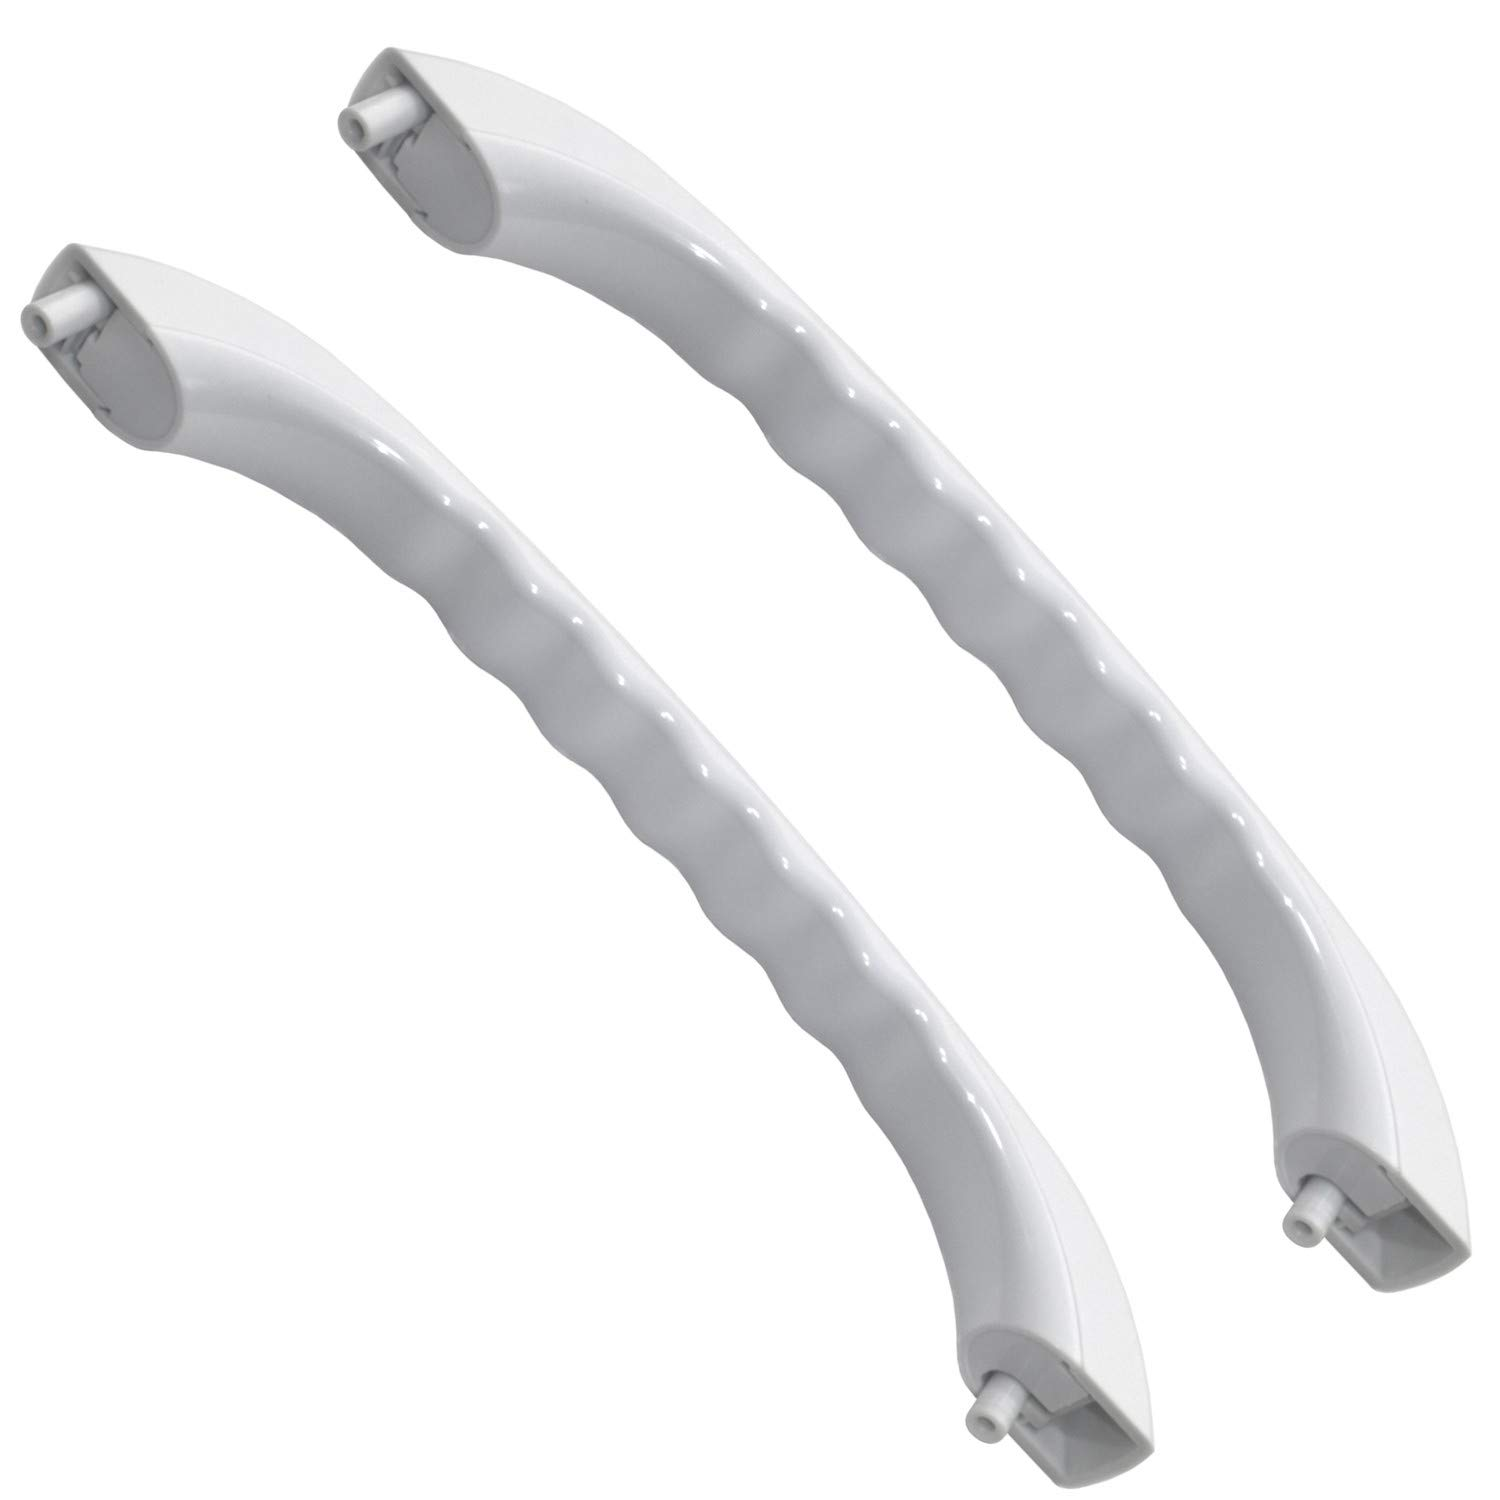 HQRP 2-Pack White Microwave Door Handle Replacement for General electric GE JVM1331WW05 JVM1339WW01 JVM1340WW03 JVM1341WW01 JVM1350WW02 JVM1350WW03 plus HQRP Coaster